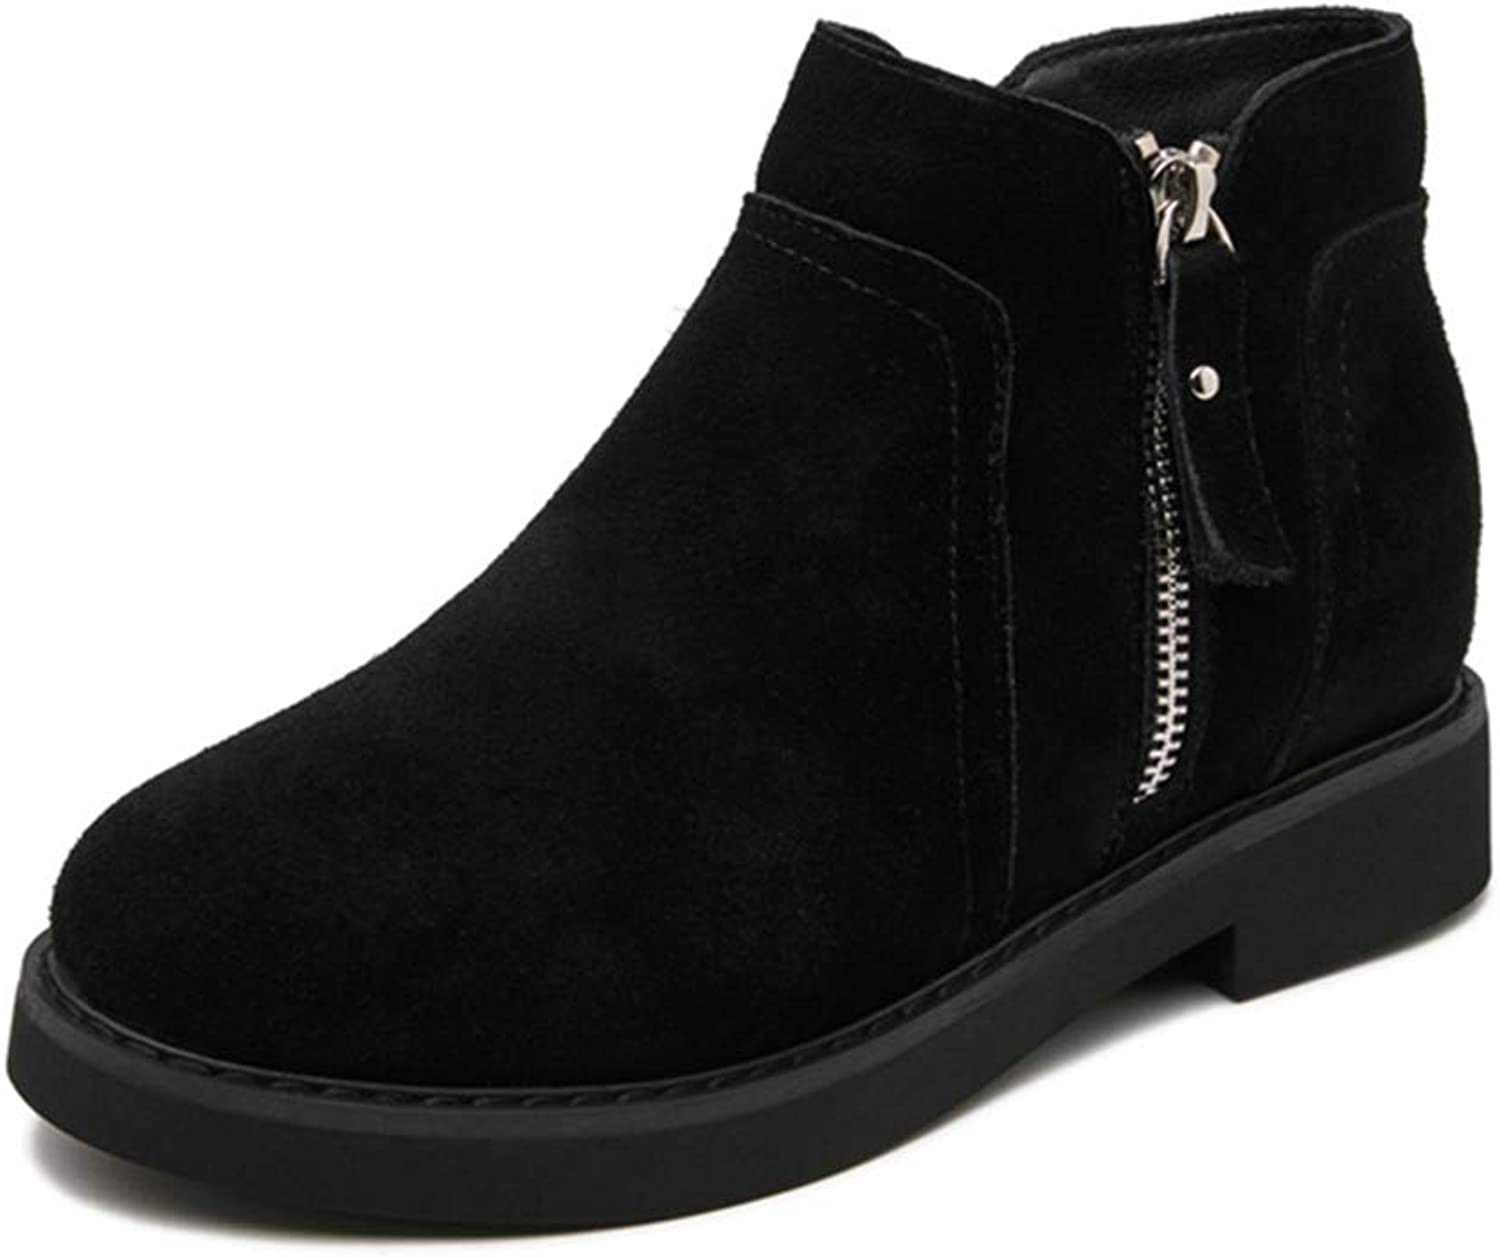 York Zhu Women Boots,Round Toe Side Zipper Suede Leather Internal Increase Ankle Boots